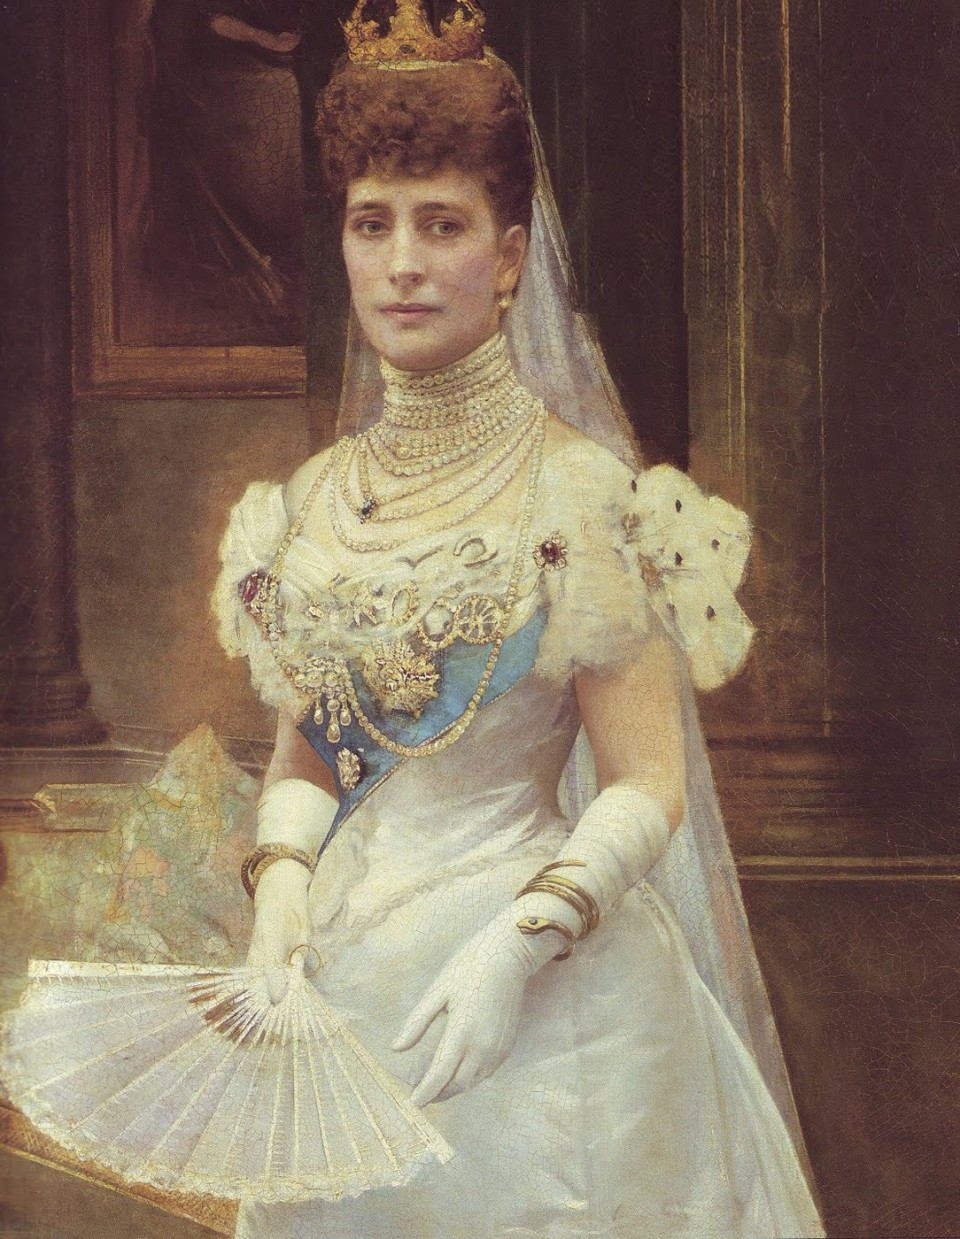 Portrait of Queen Alexandra and her favoured serpent bracelet